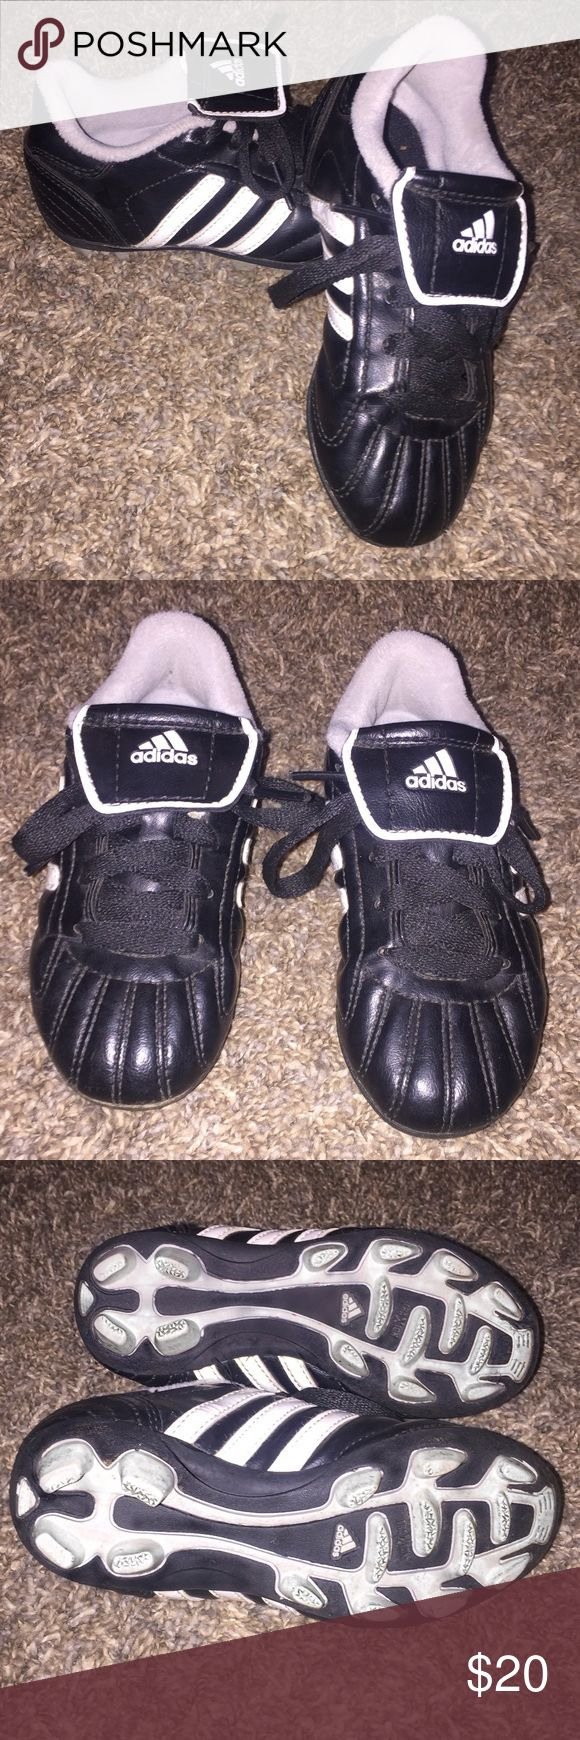 Toddler boys ADIDAS baseball cleats Excellent condition.  Very little signs of wear.  No rips or holes.  Pet and smoke free home. Adidas Shoes Sneakers